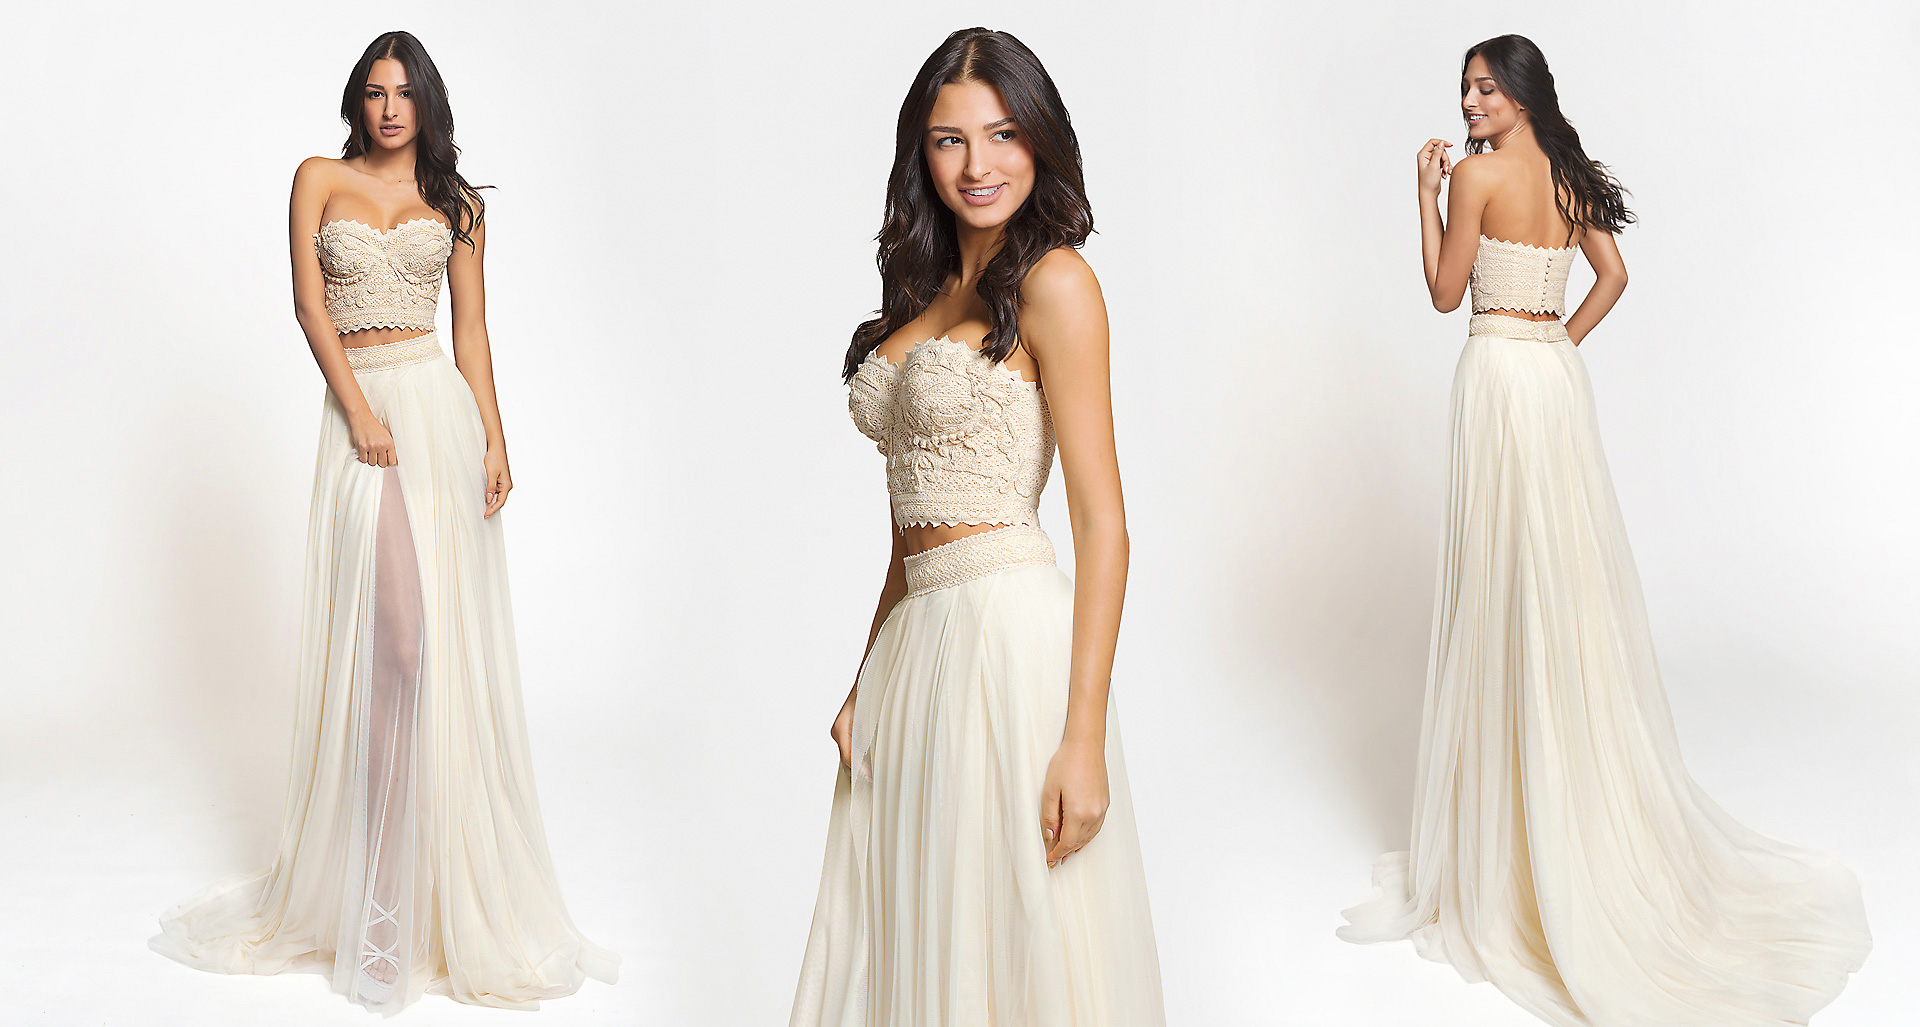 Delis wedding dress from  Hellenic Vintage Crop Top Collection